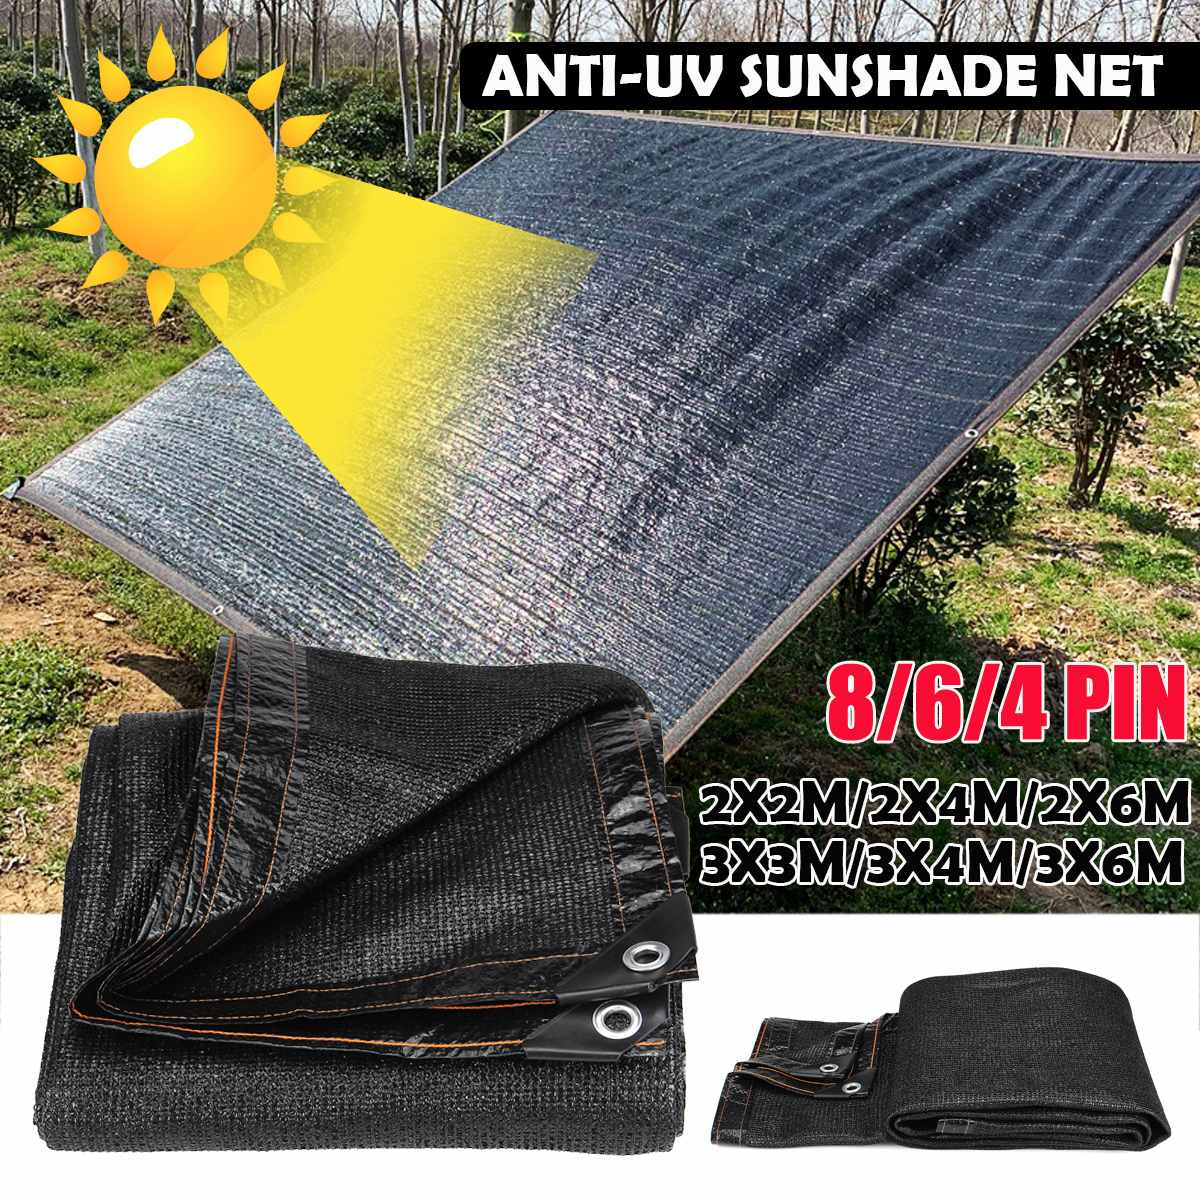 Anti-UV Sunshade Net Outdoor Garden Sunscreen Sunblock Shade Cloth Net Plant Greenhouse Cover Car Cover 55/70/85% Shading Rate